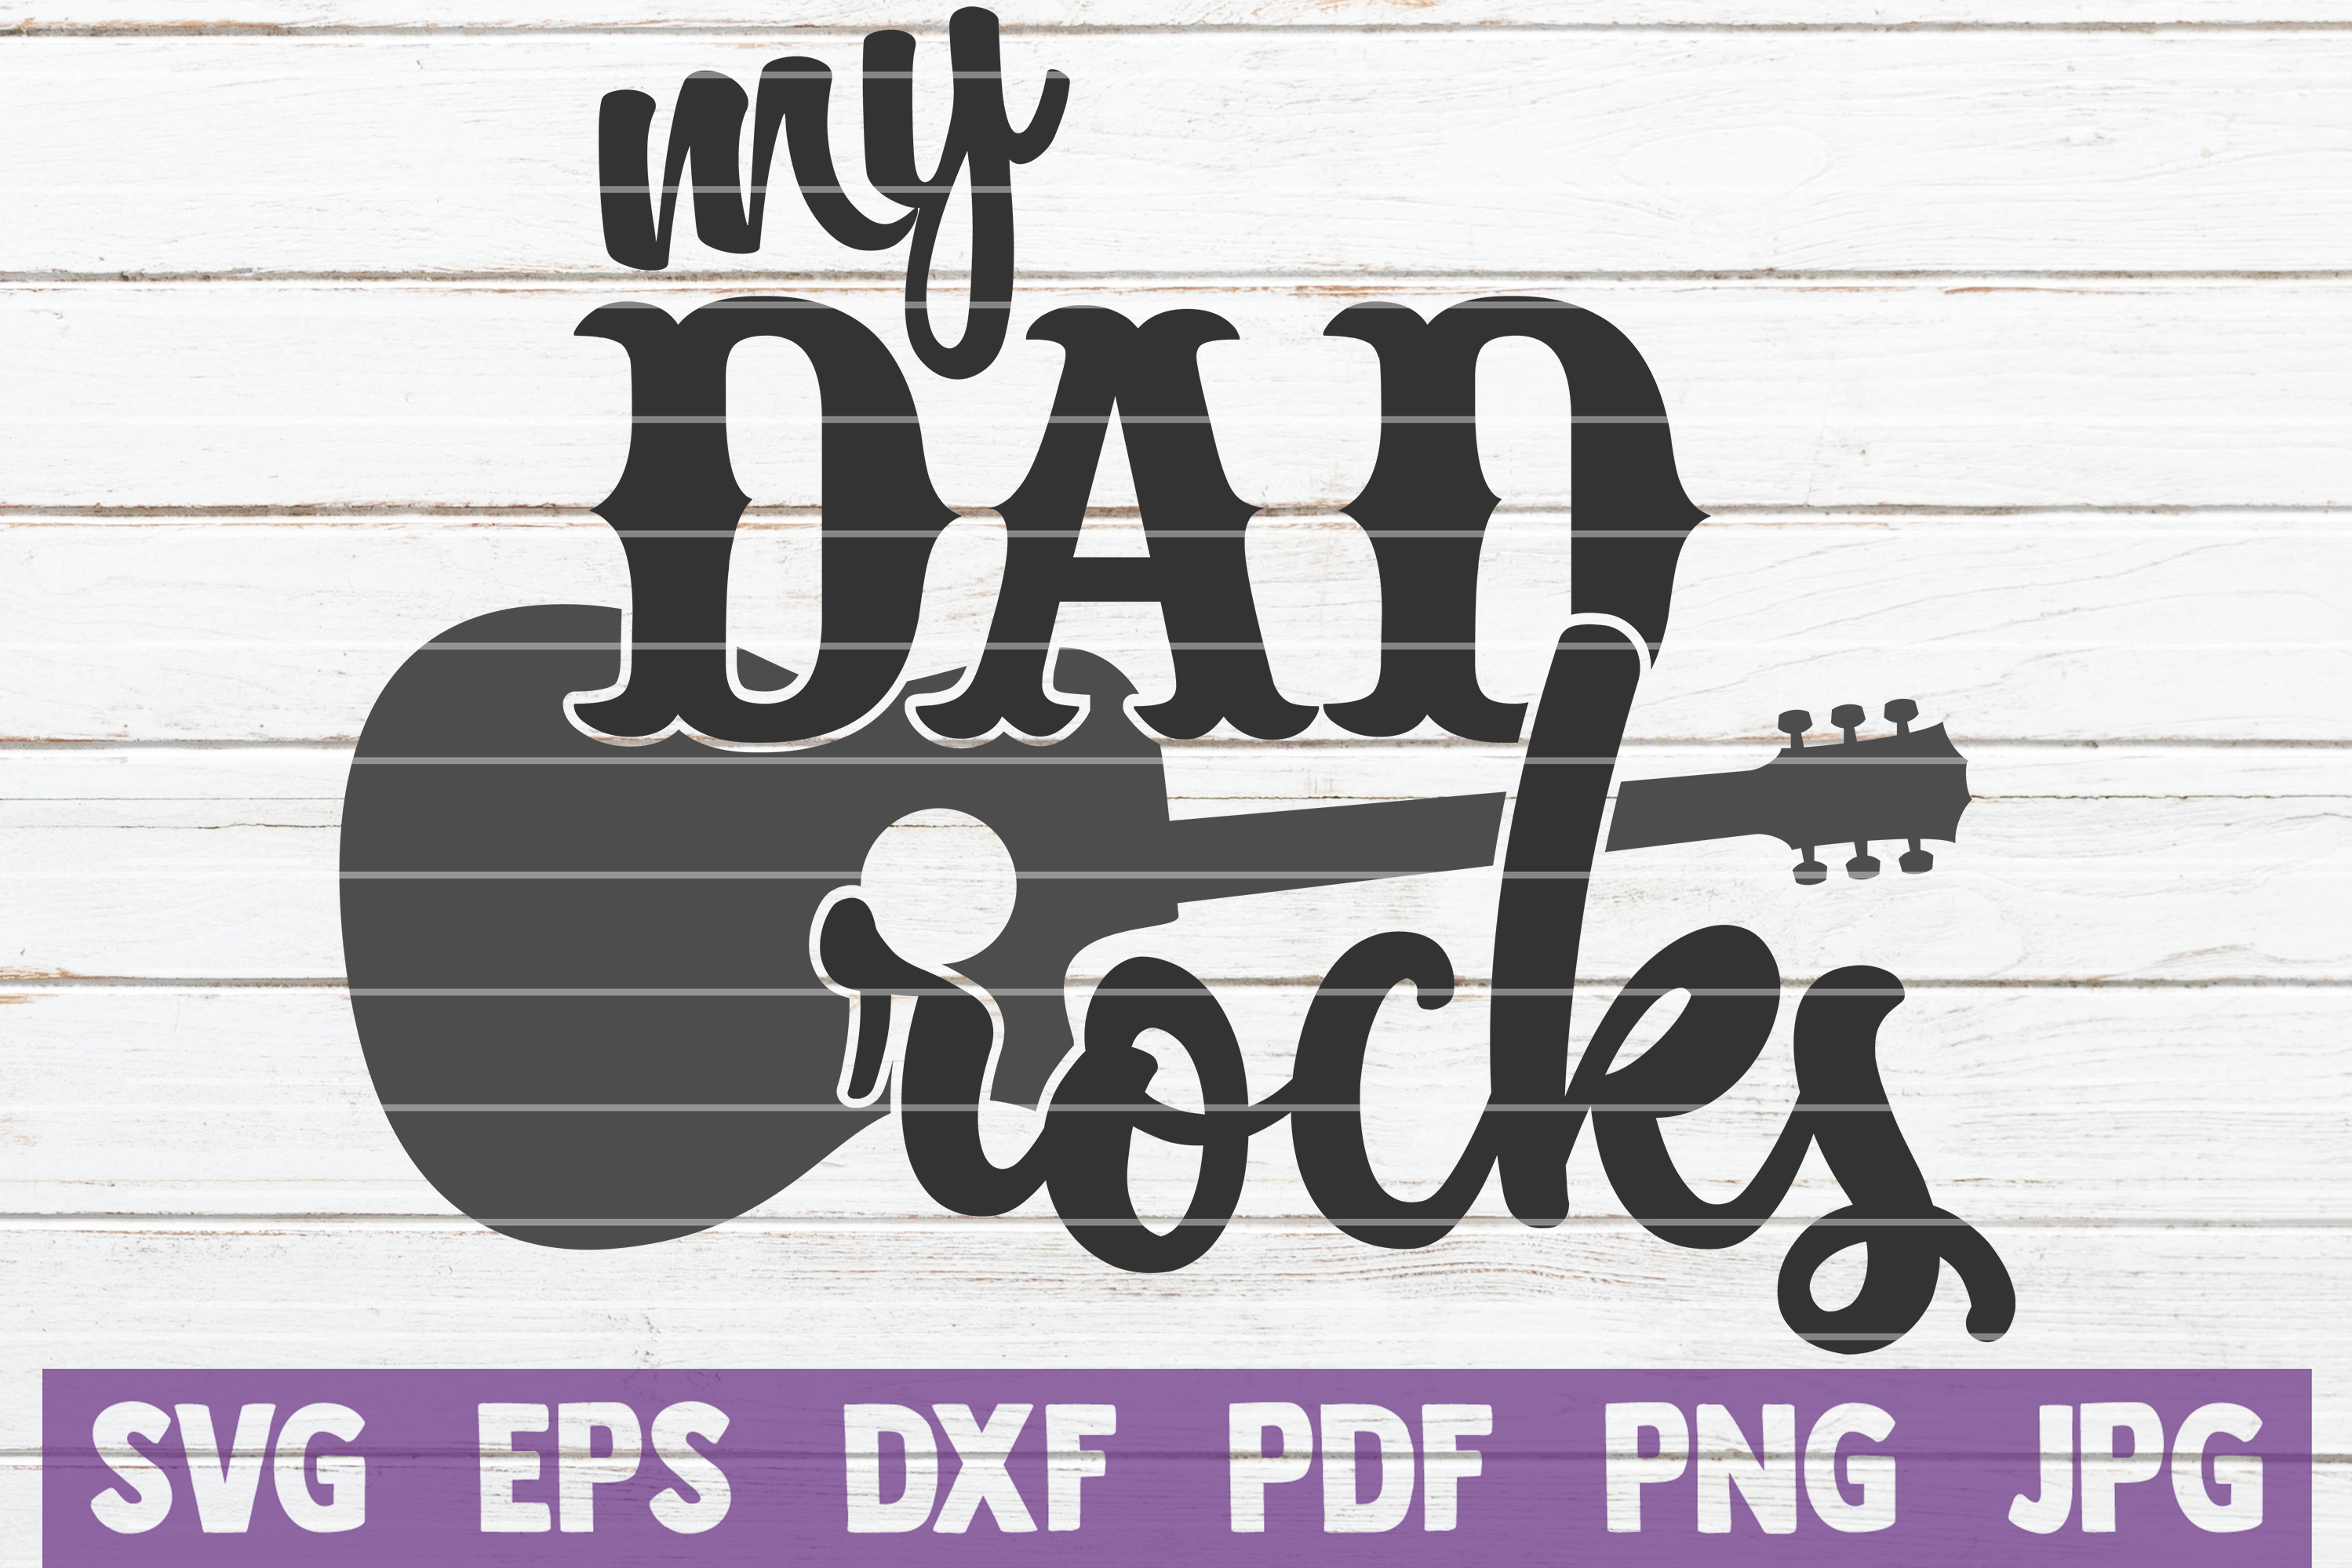 Download Free My Dad Rocks Svg Cut File Graphic By Mintymarshmallows for Cricut Explore, Silhouette and other cutting machines.